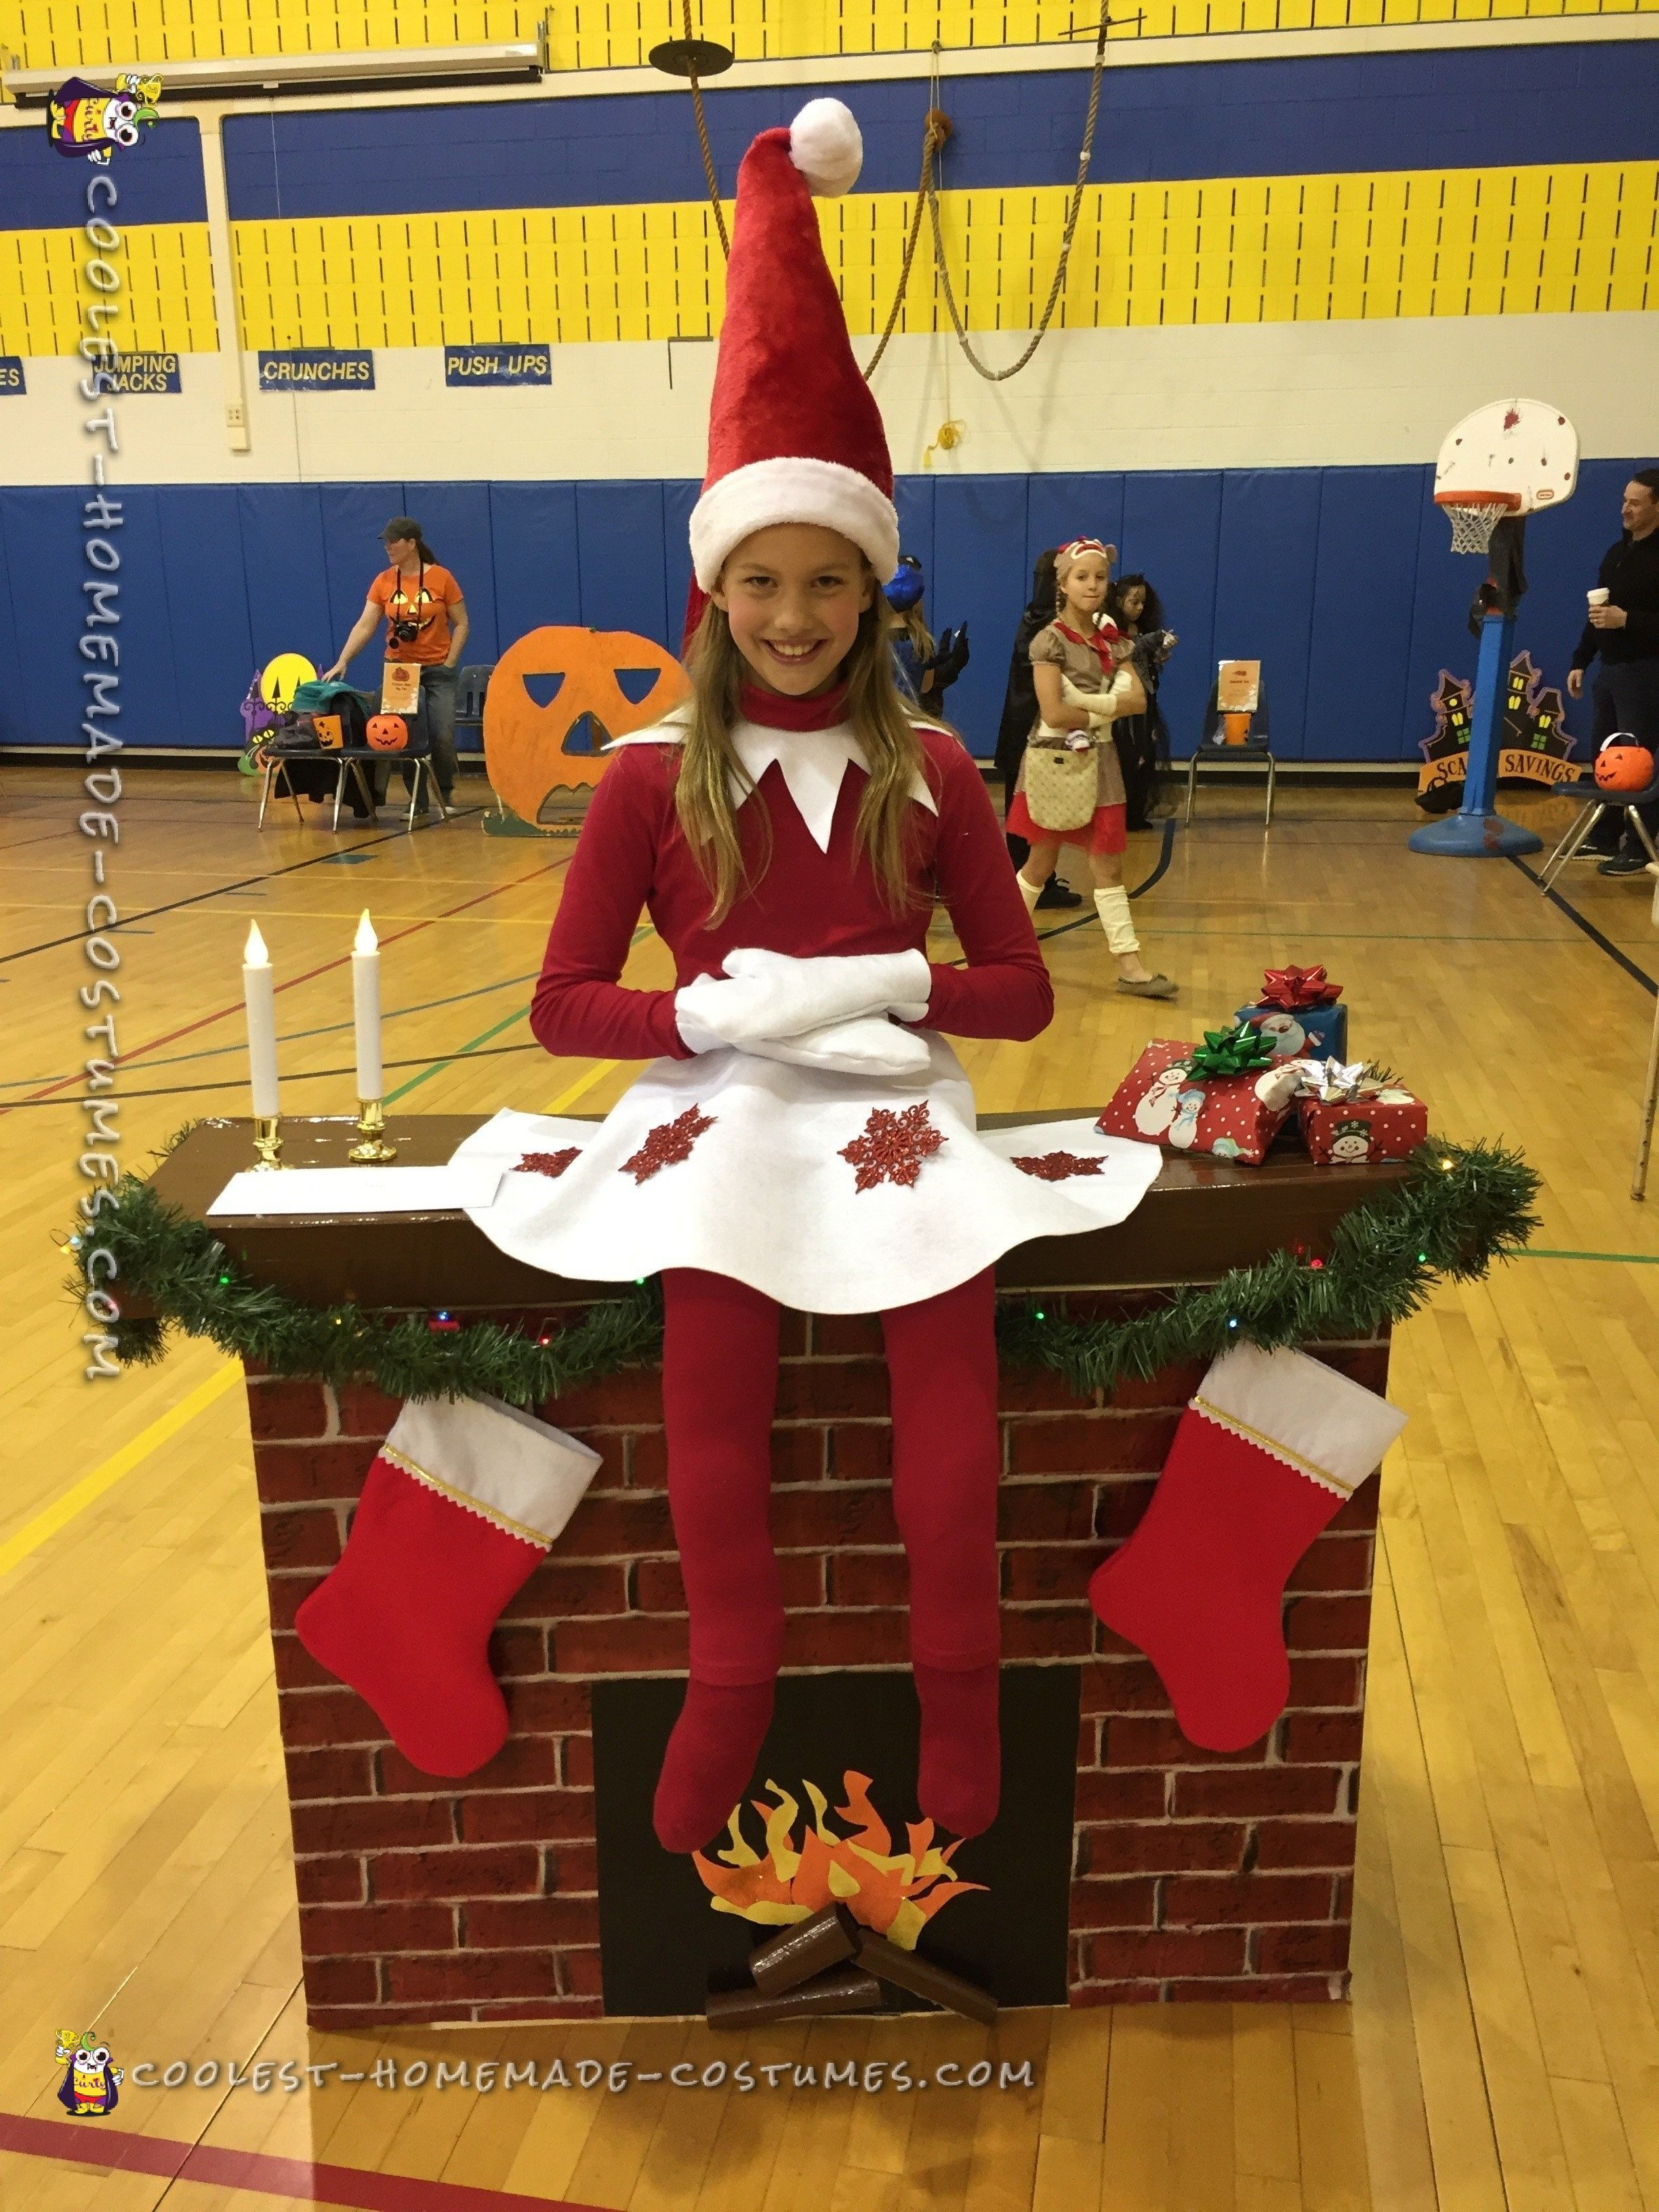 Elf on a Shelf DIY Illusion Costume fun kid costumes